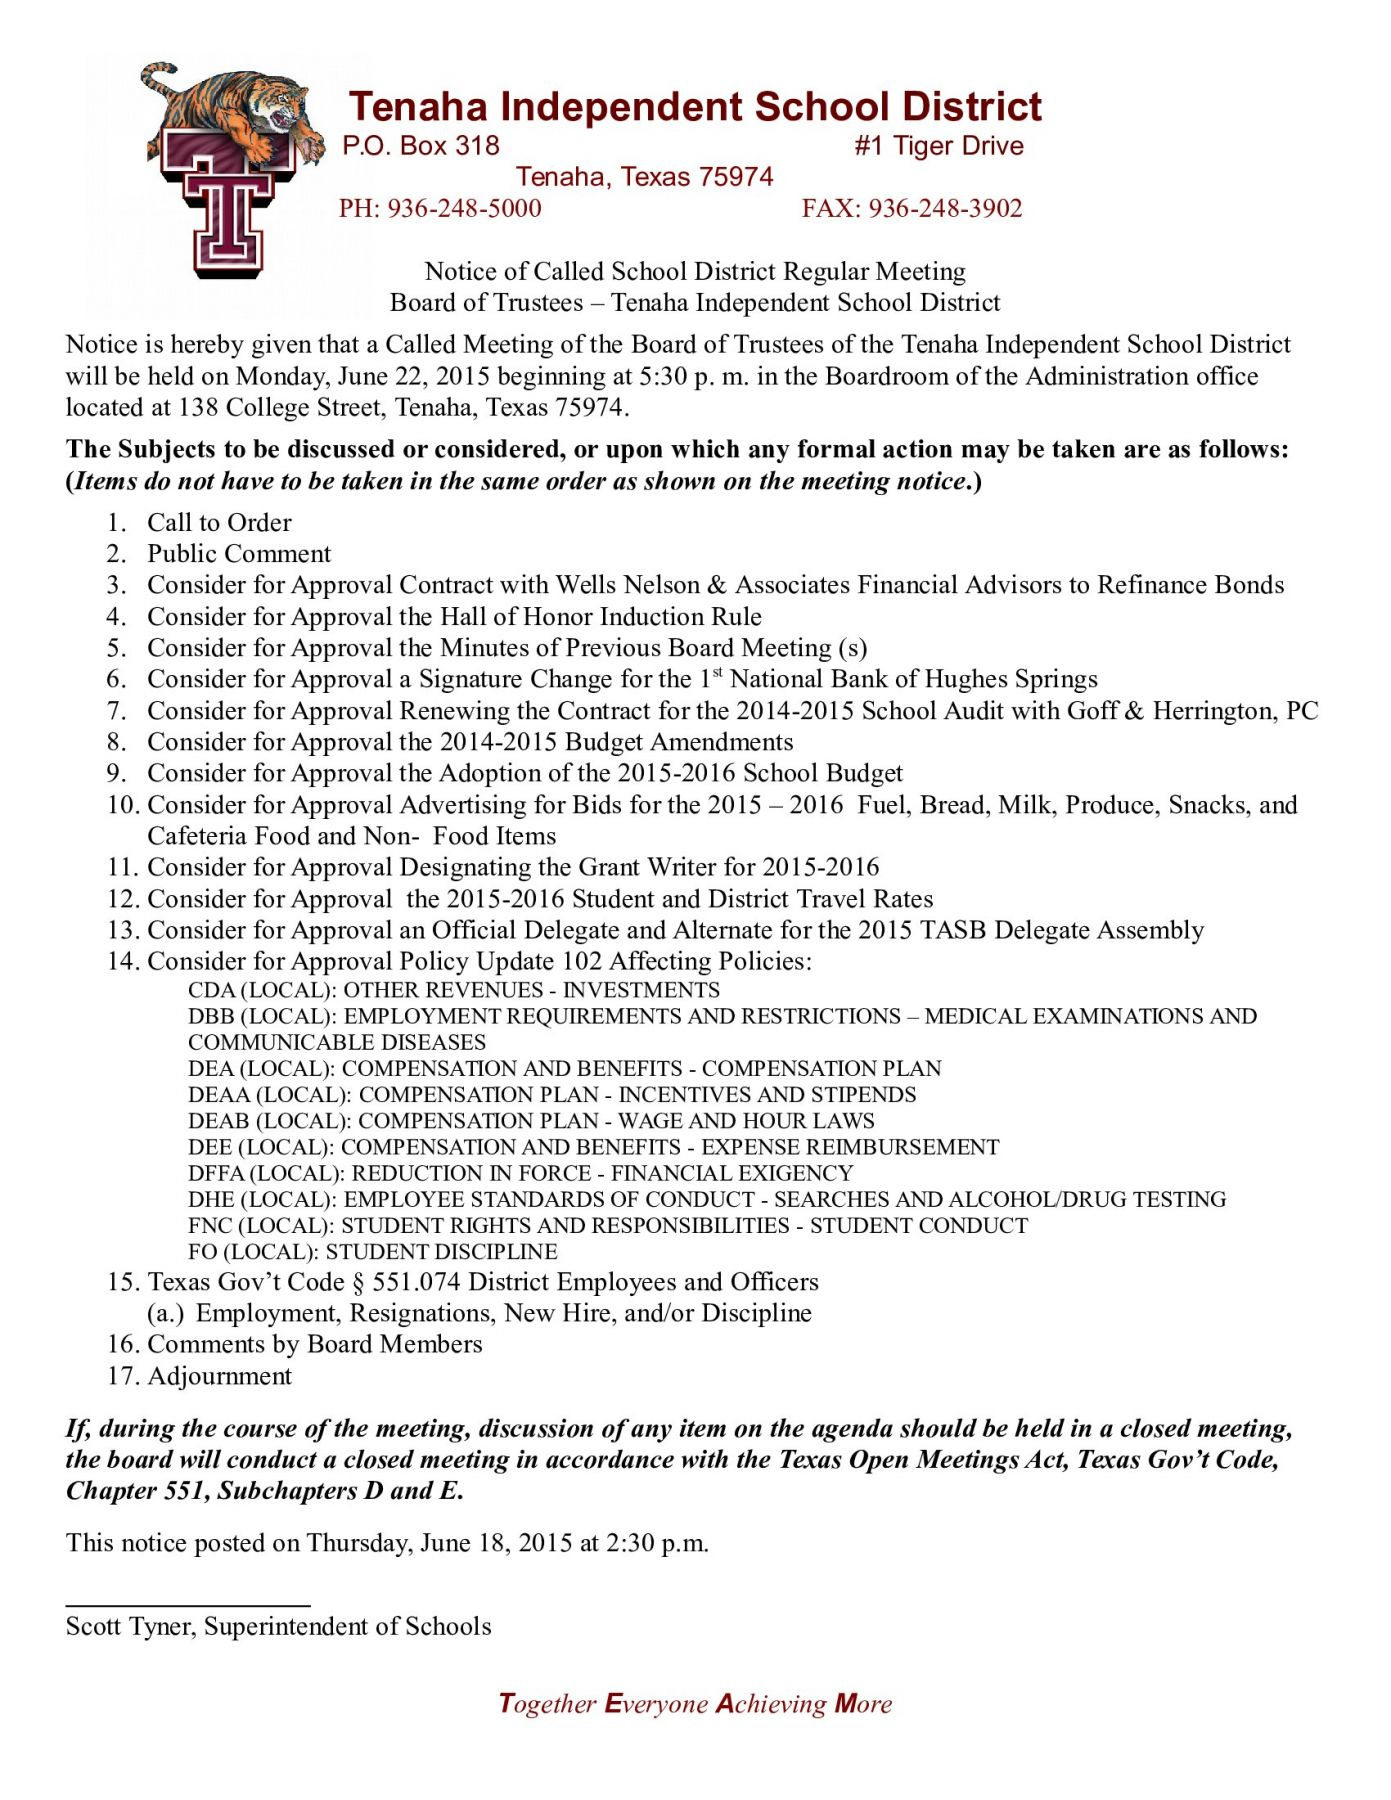 News headlines center broadcasting live local reaching out tenaha isd board of trustees to meet monday agenda 1betcityfo Choice Image